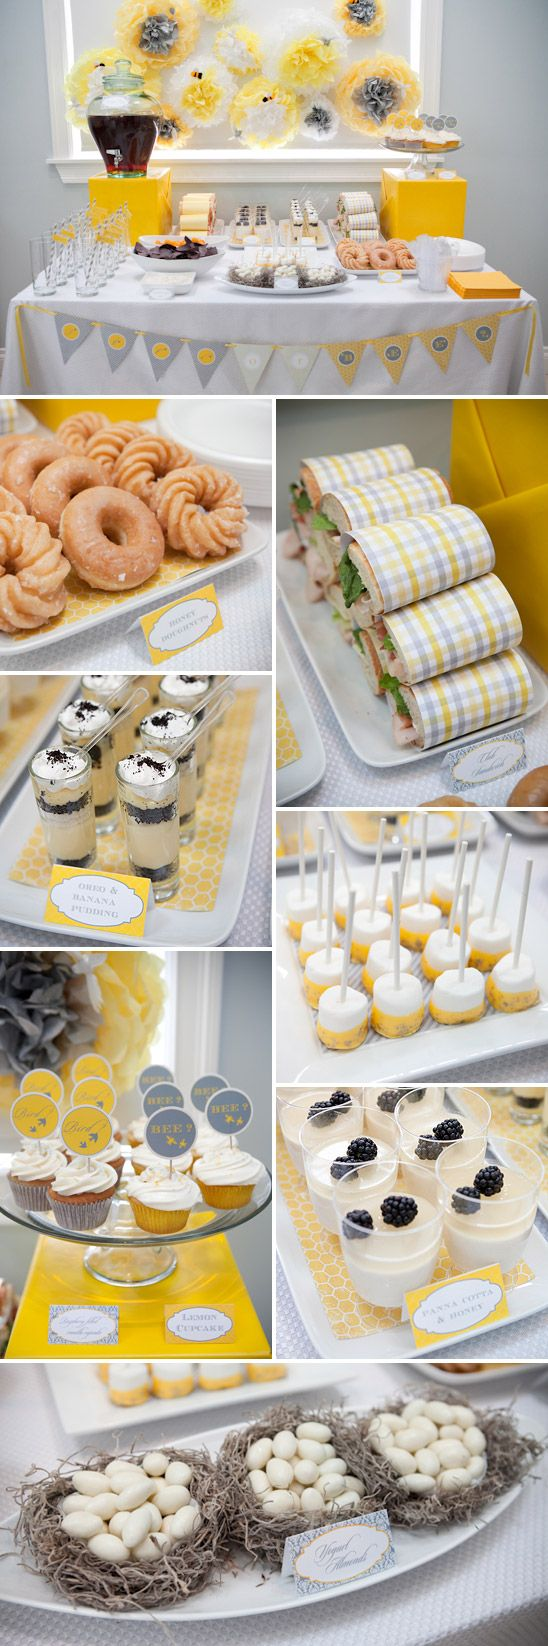 Birds & Bees Themed Gender Reveal Party - On to Baby. Change the colors for any kind of party, but I love the sandwiches wrapped in paper!